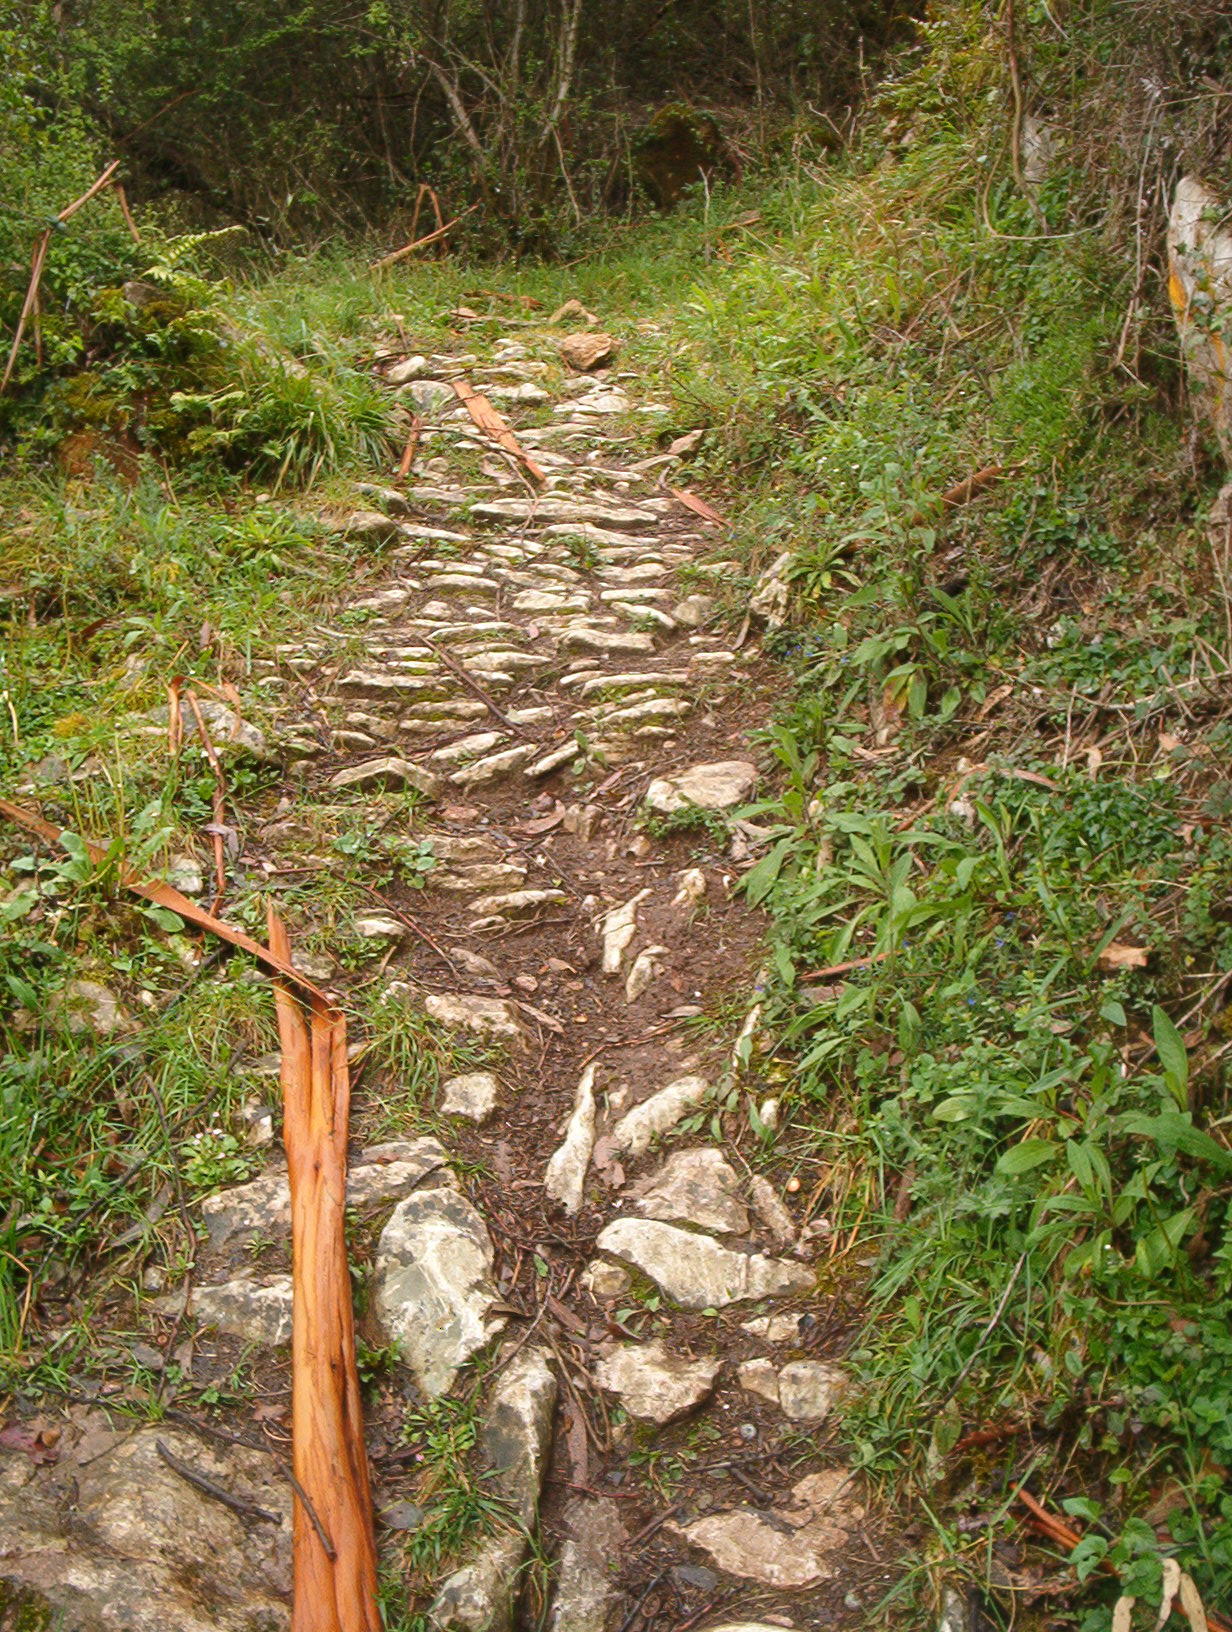 Steep, rocky<br>path